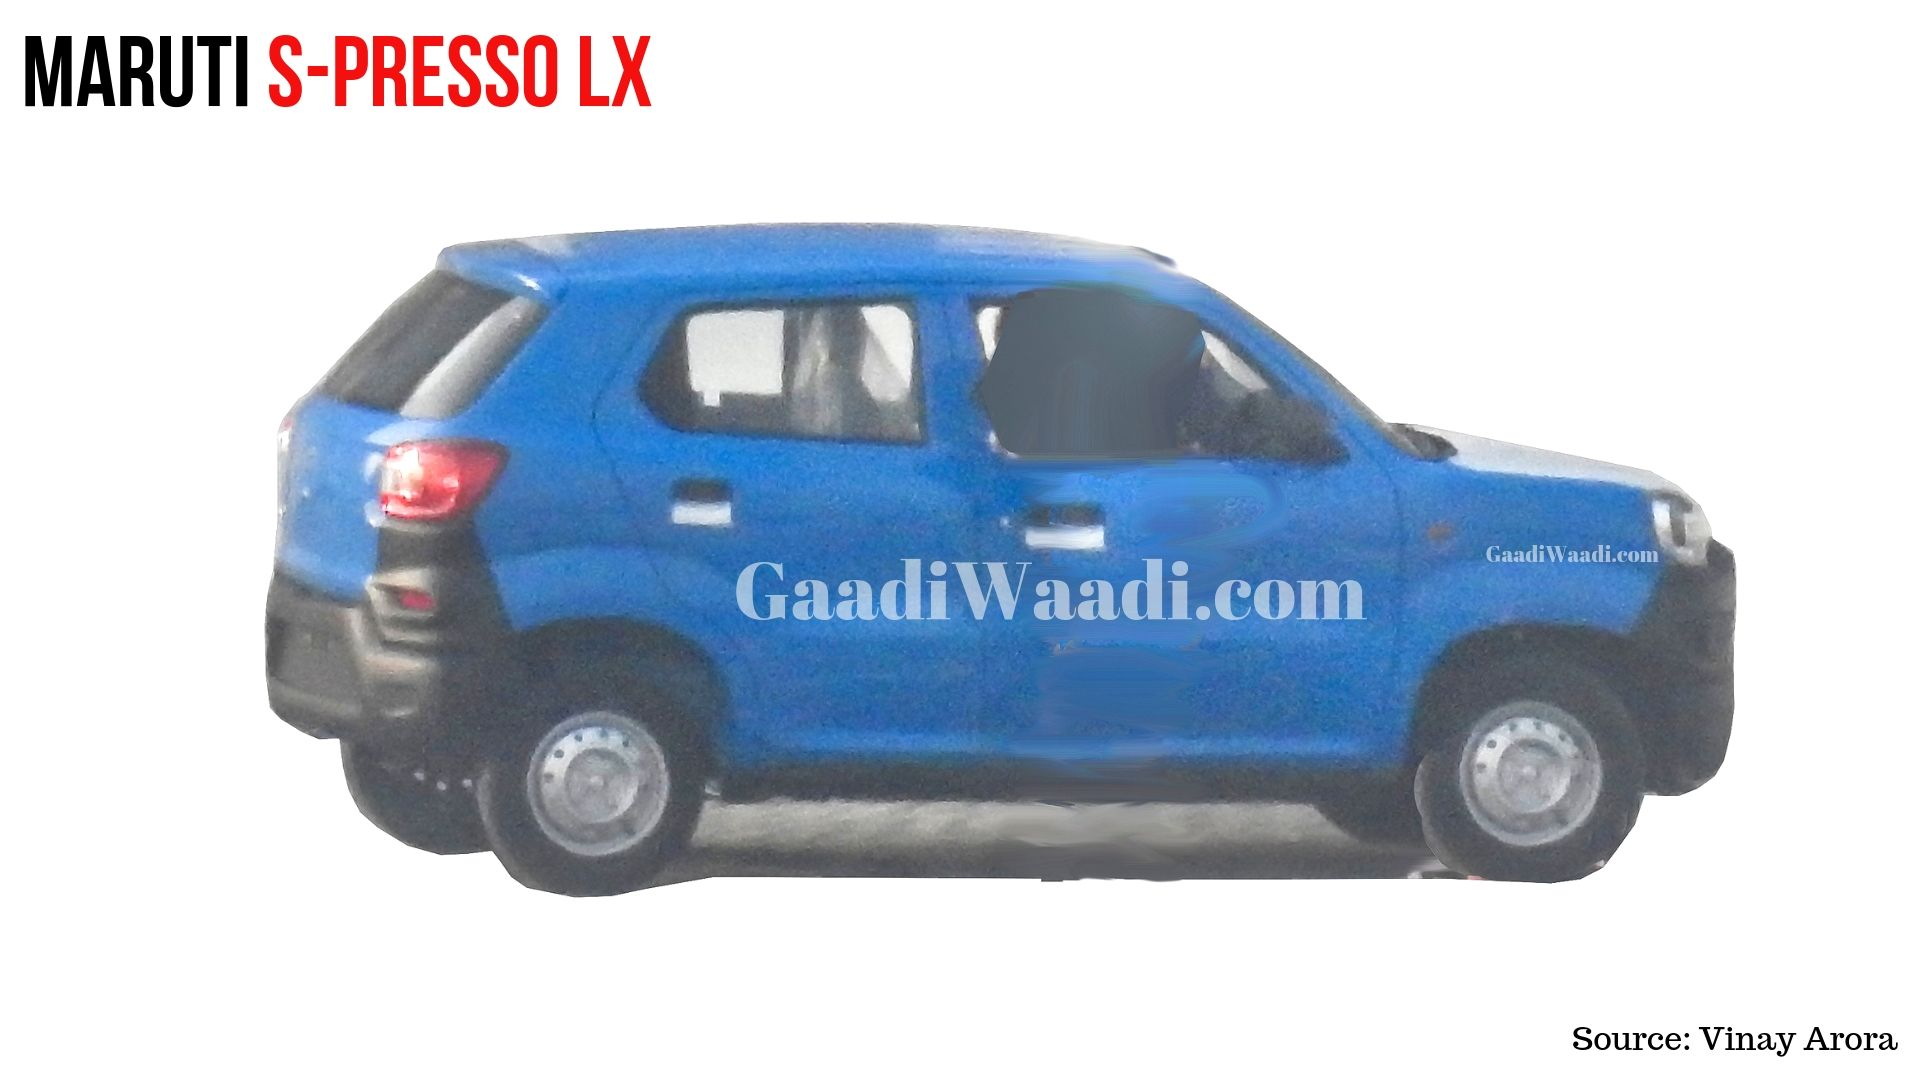 Upcoming Maruti S-presso LX (Base Variant) Spied Undisguised - GaadiWaadi.com thumbnail